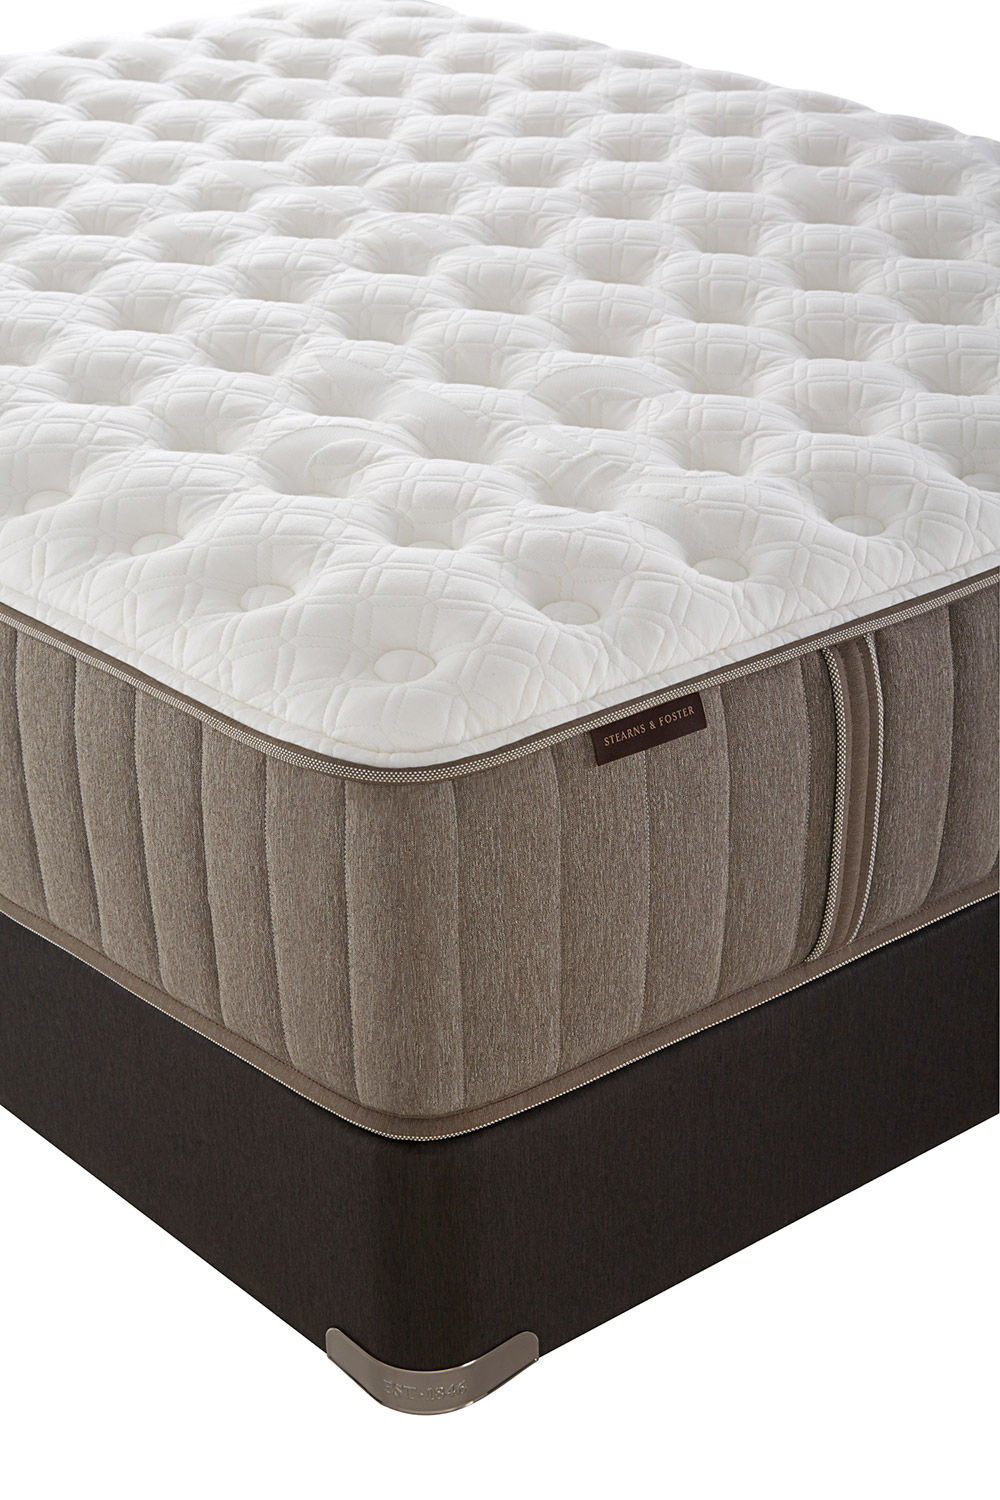 Picture of Stearns & Foster Scarborough Plush Tighttop Queen Mattress Only